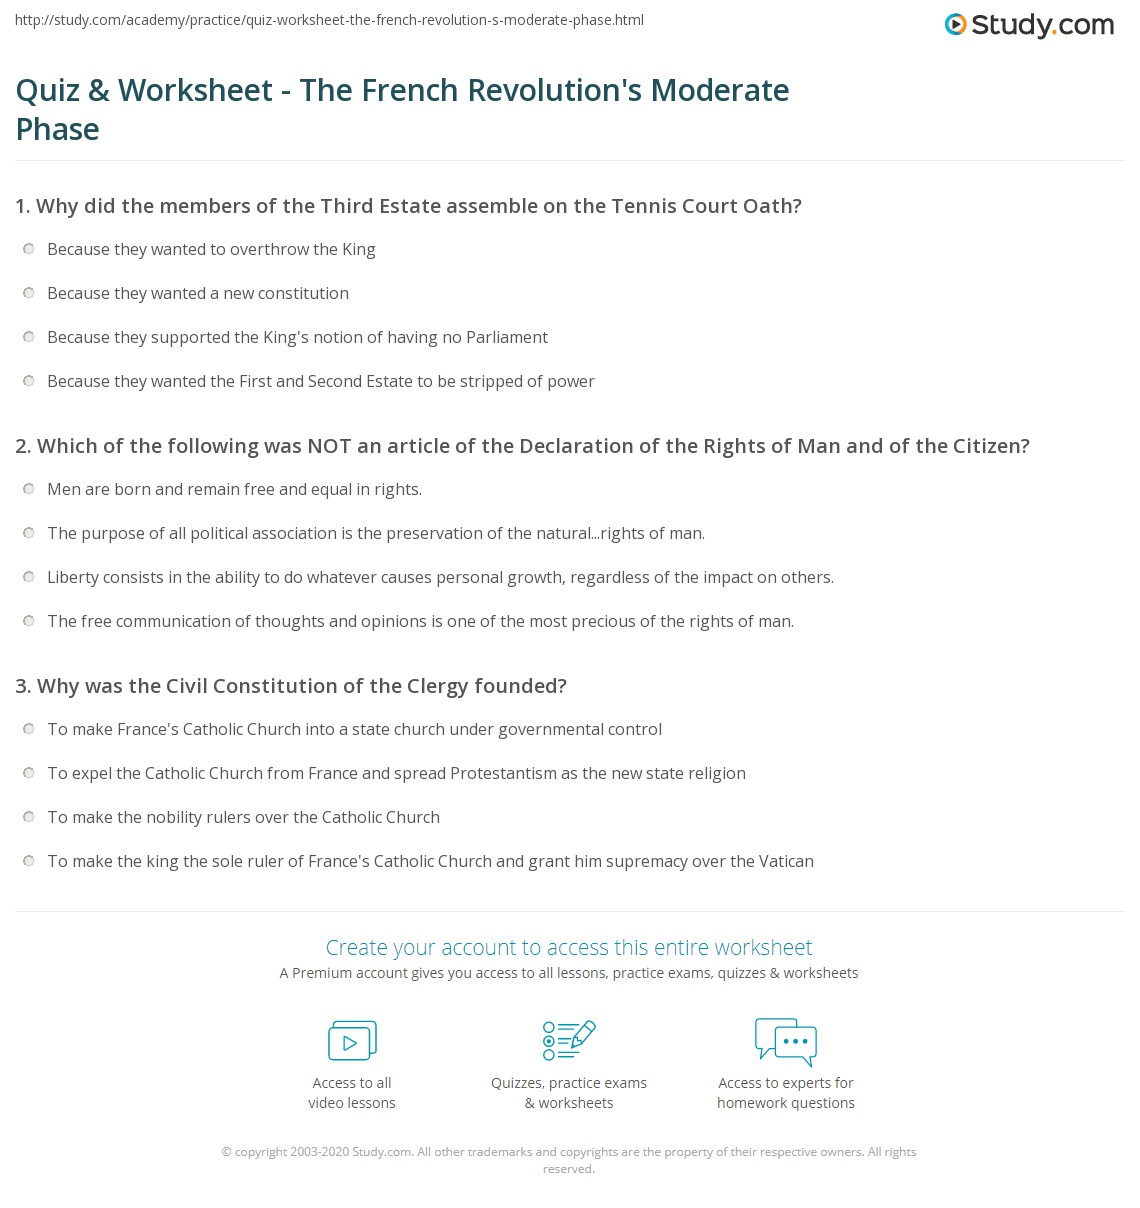 quiz worksheet the french revolution s moderate phase com print the constitutional monarchy declaration of the rights of man and citizen the civil constitution worksheet